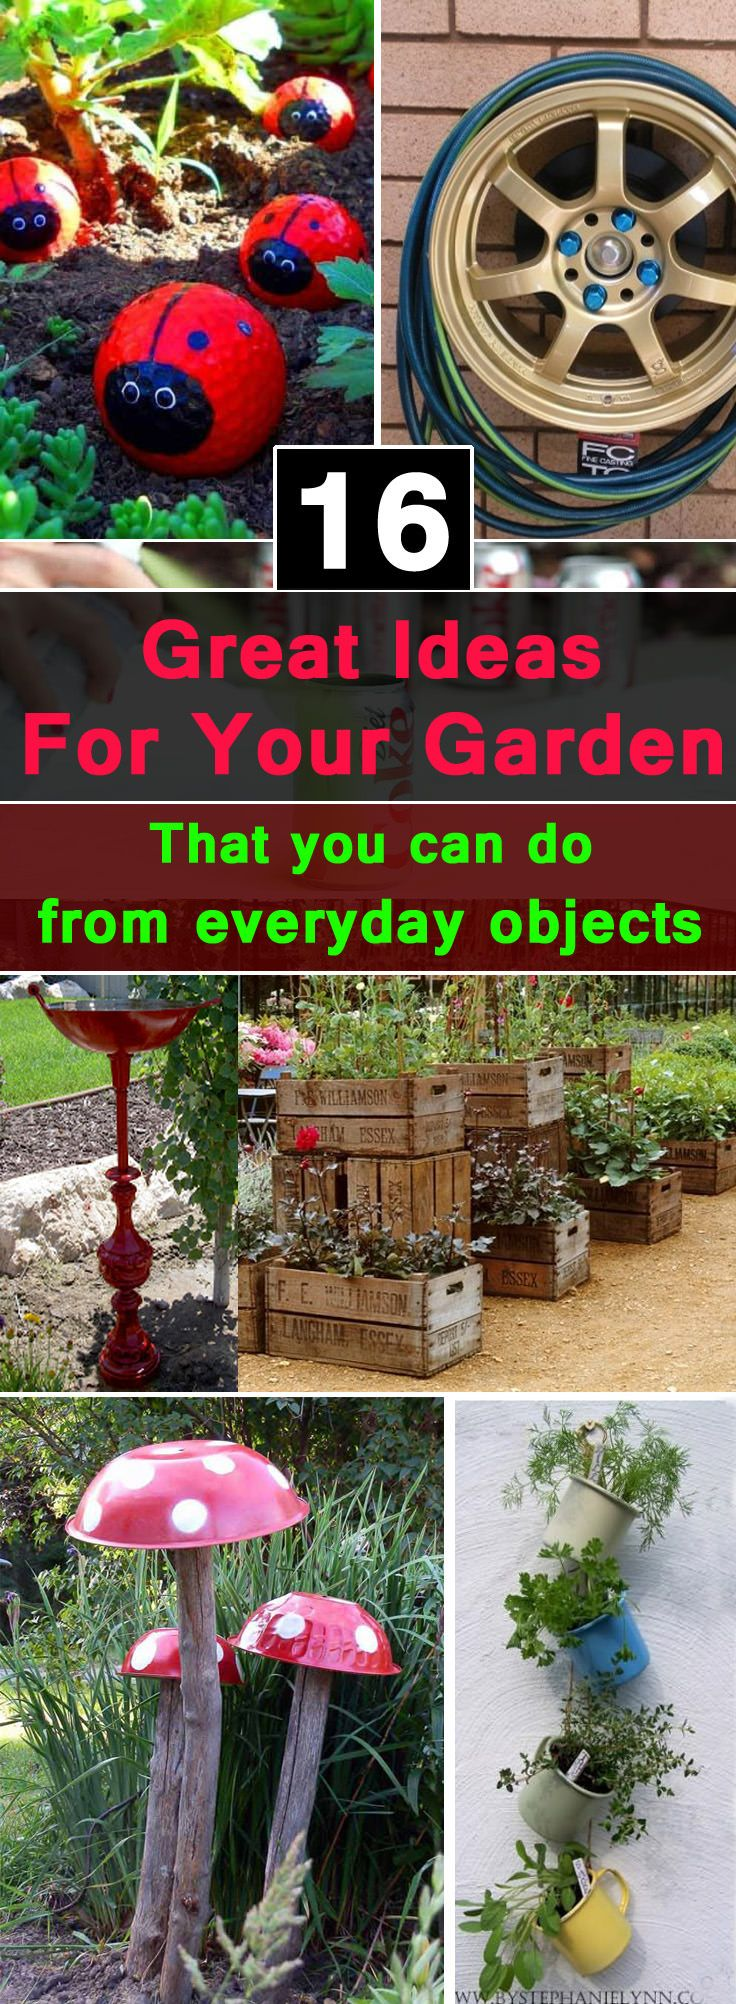 16 Great Ideas For Garden That You